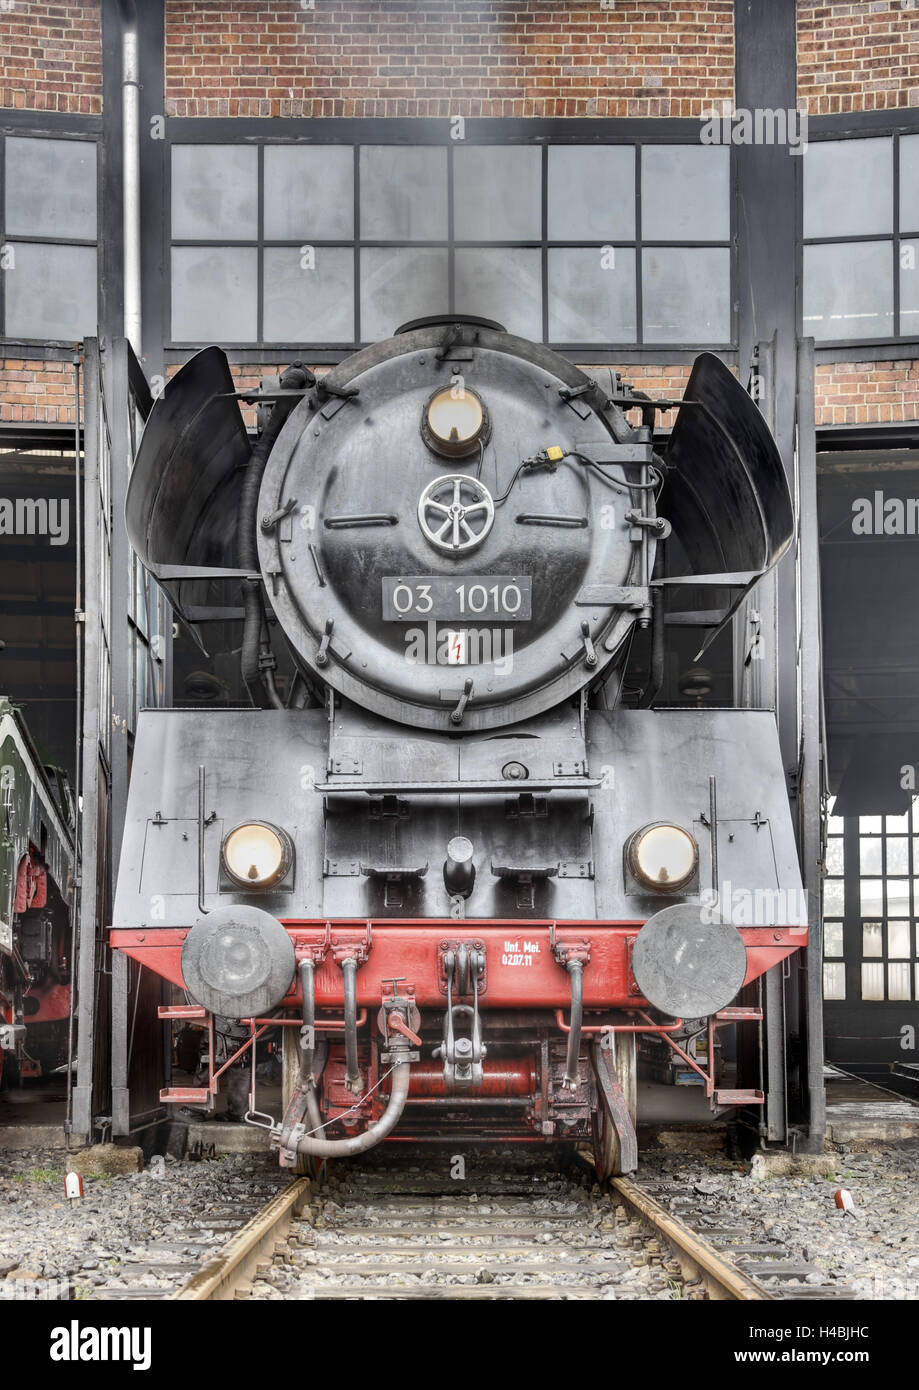 Locomotive, engine shed, frontal view, - Stock Image